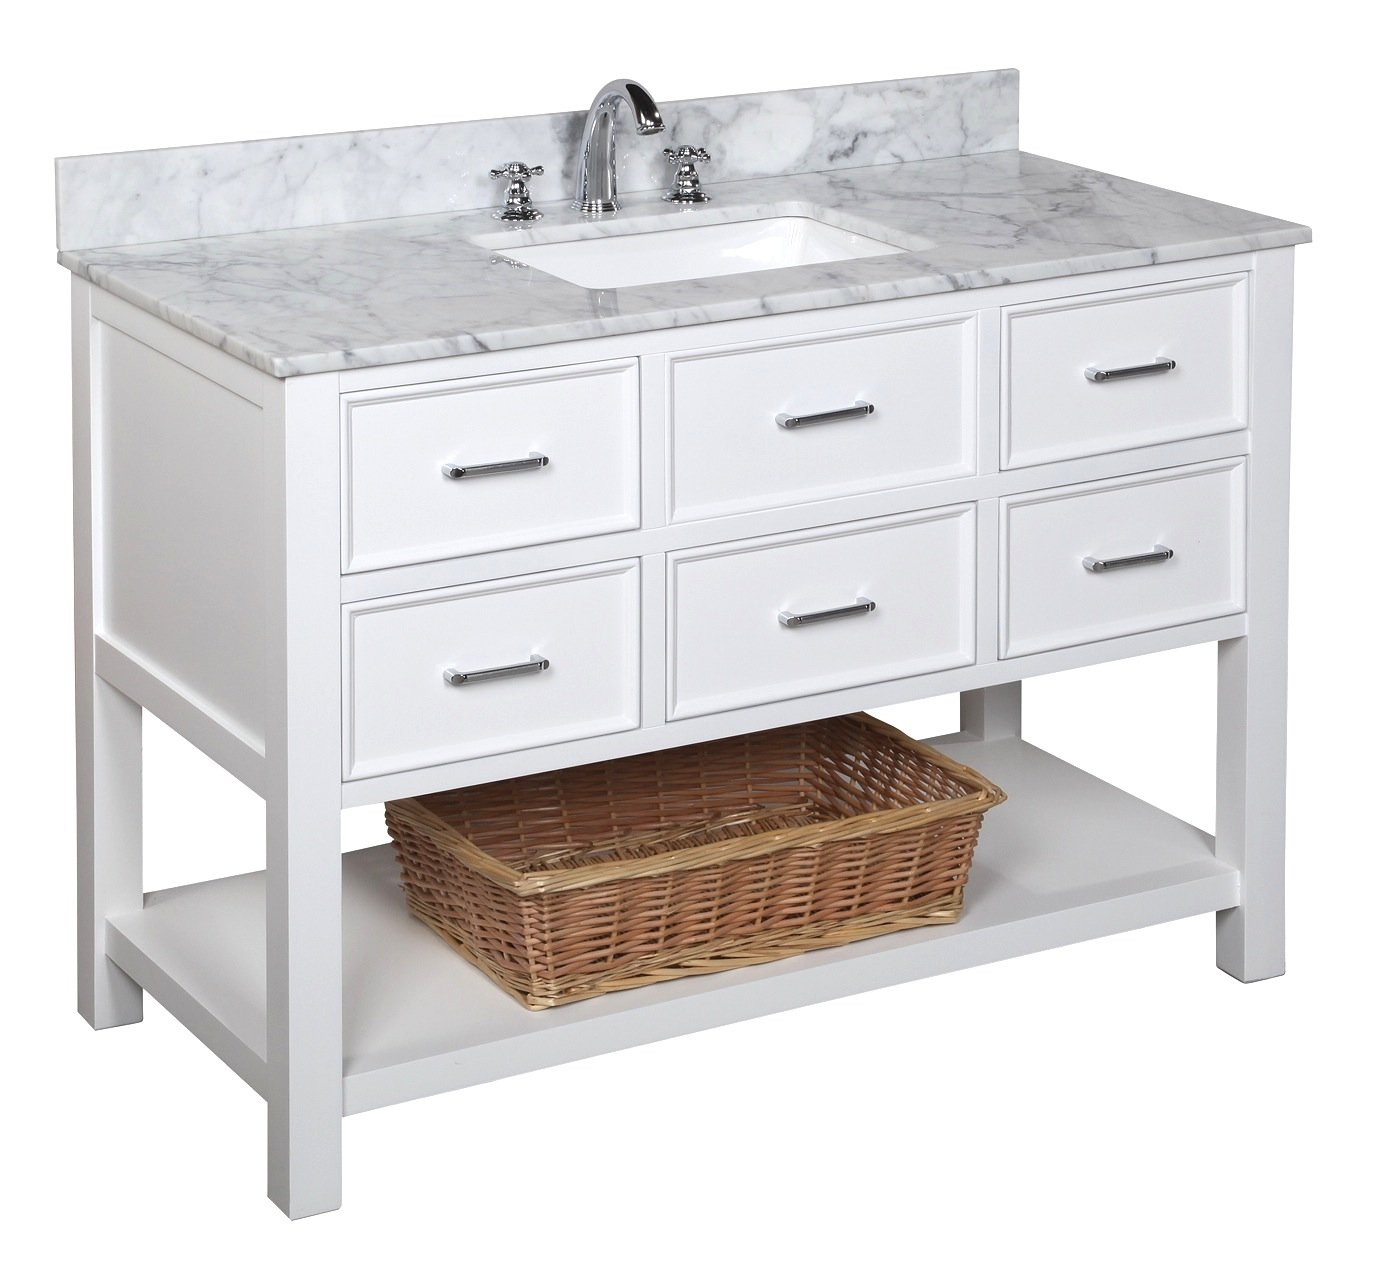 Low Cost Kitchen Bath Collection Kbcd9wtcarr New Hampshire Bathroom Vanity With Marble